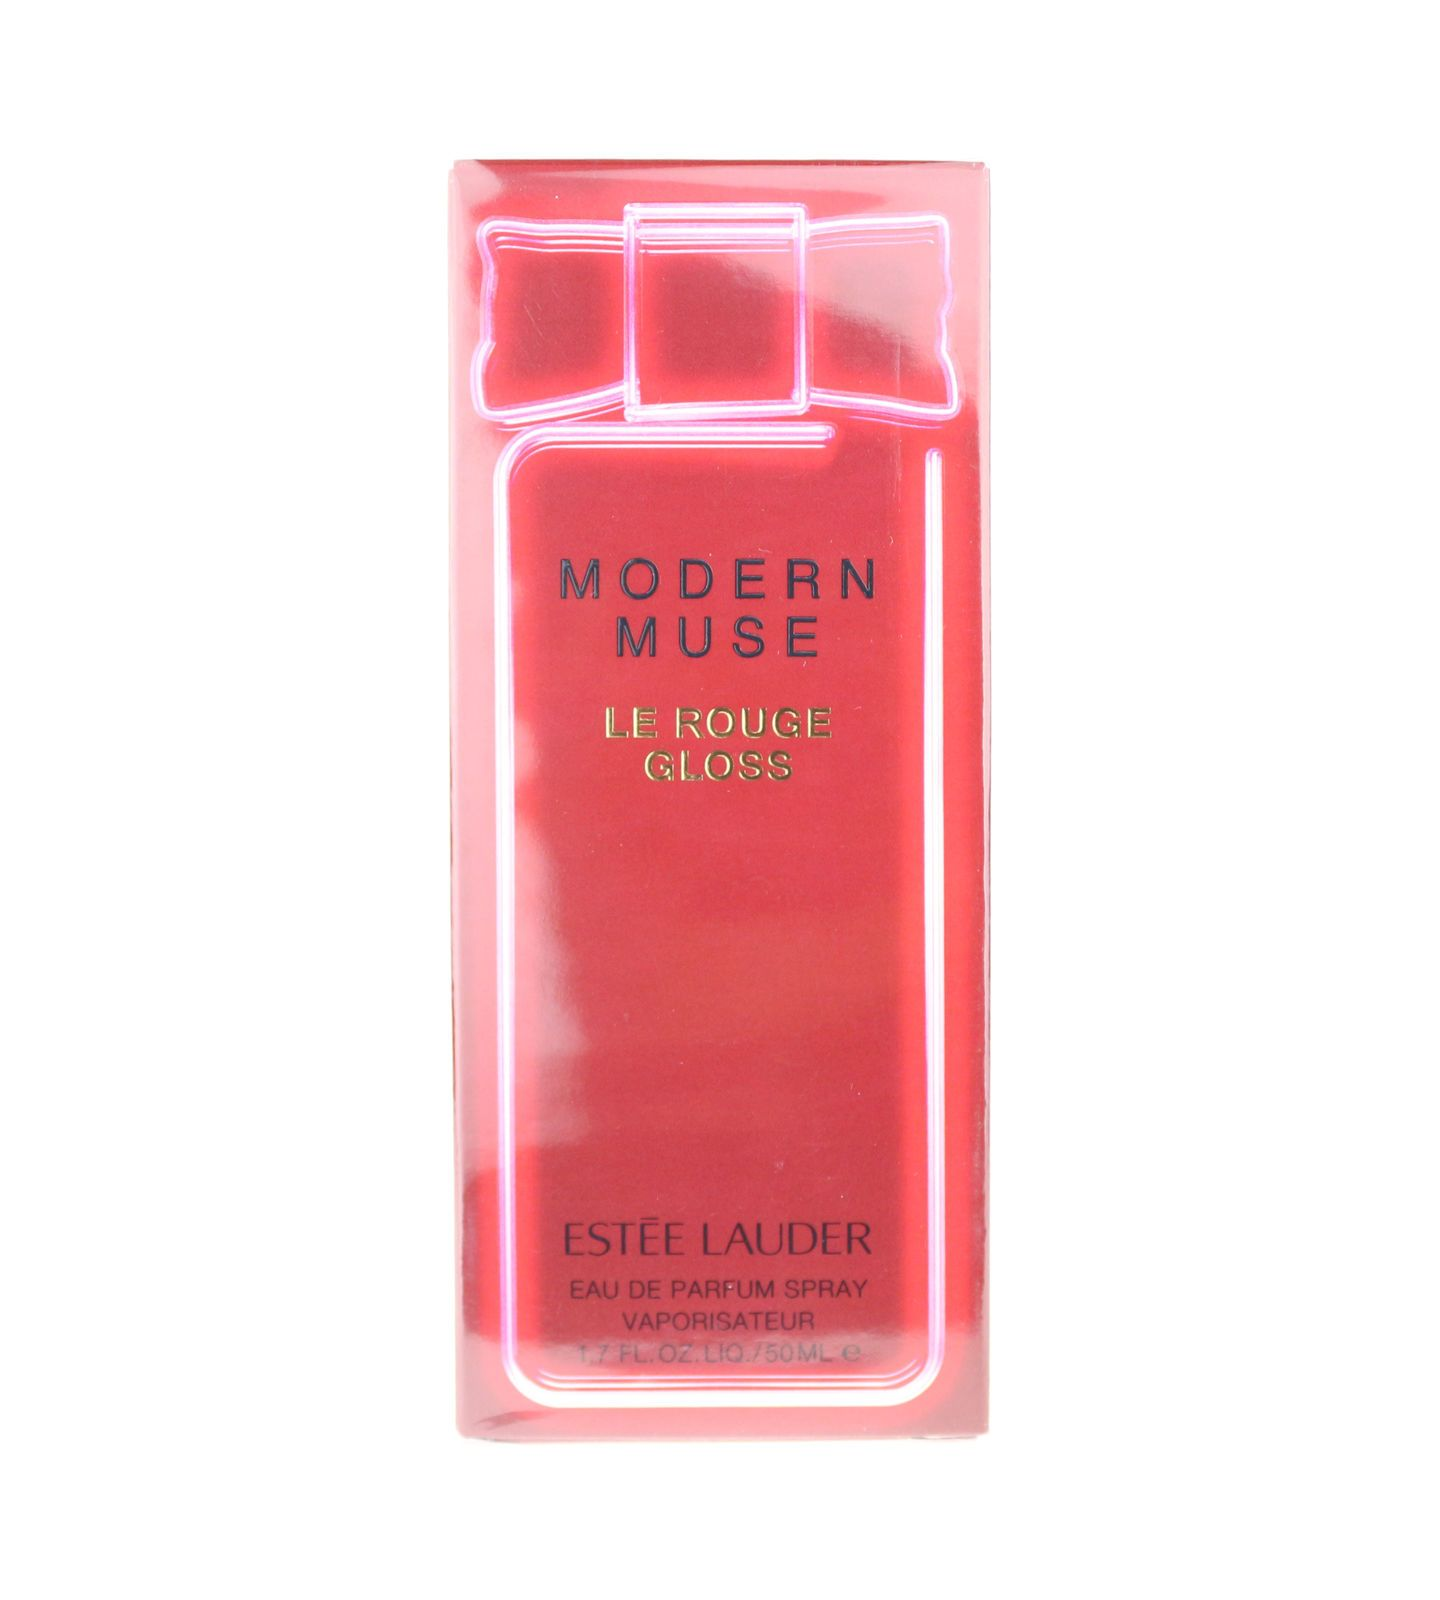 Estee Lauder Modern Muse Le Rouge Gloss Eau De Parfum 1 7oz 50ml New In Box Modern Muse Le Rouge Gloss Estee Lauder Modern Muse Estee Lauder